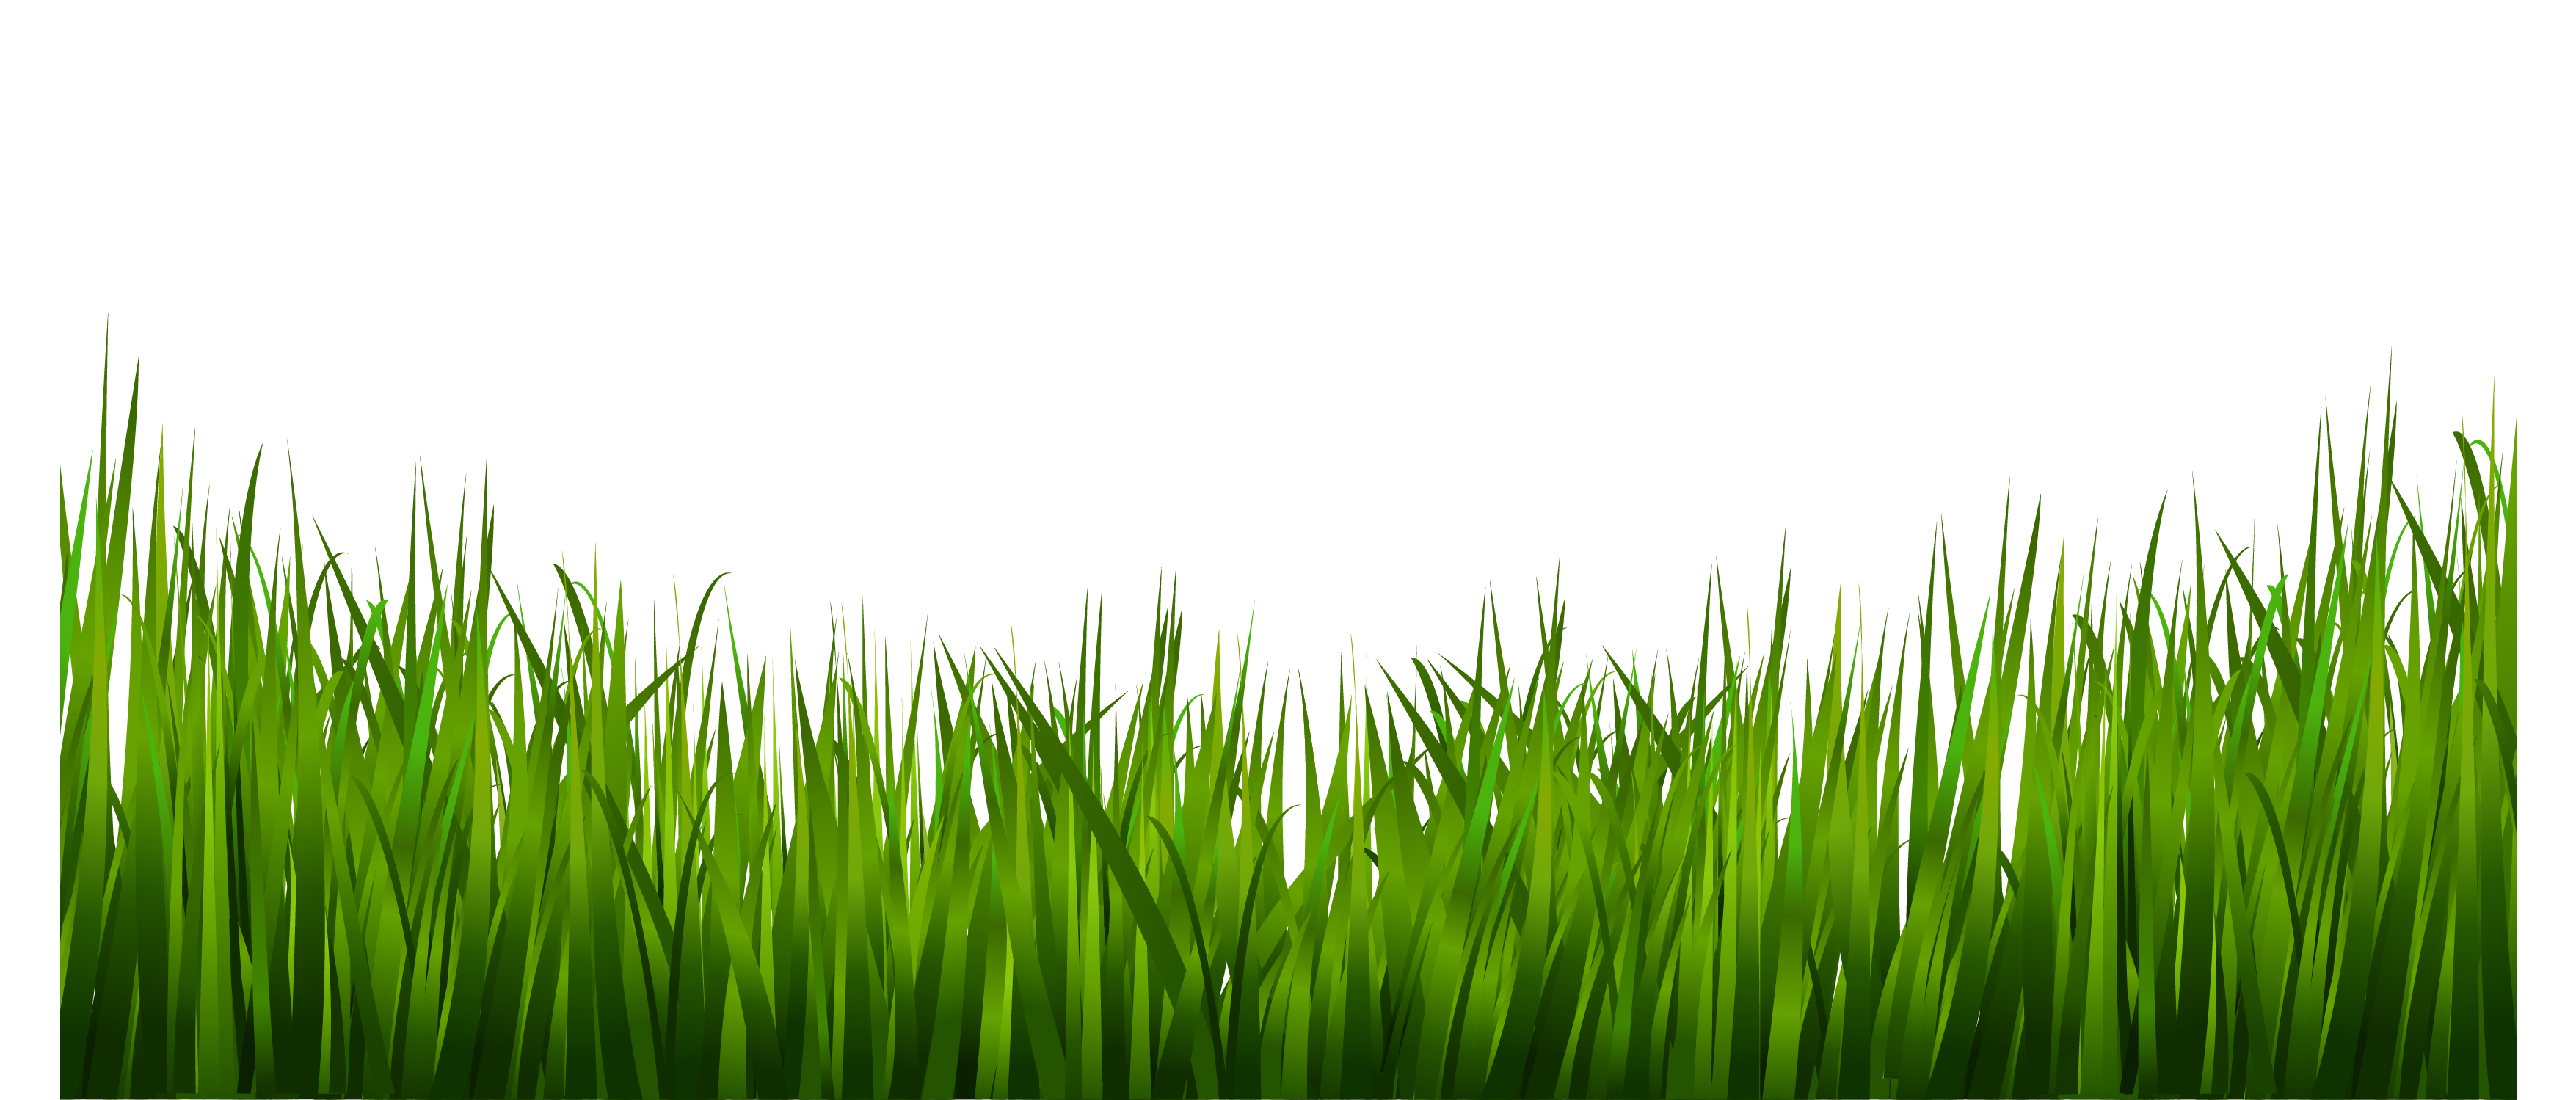 Png images a live. Clipart mountain grass